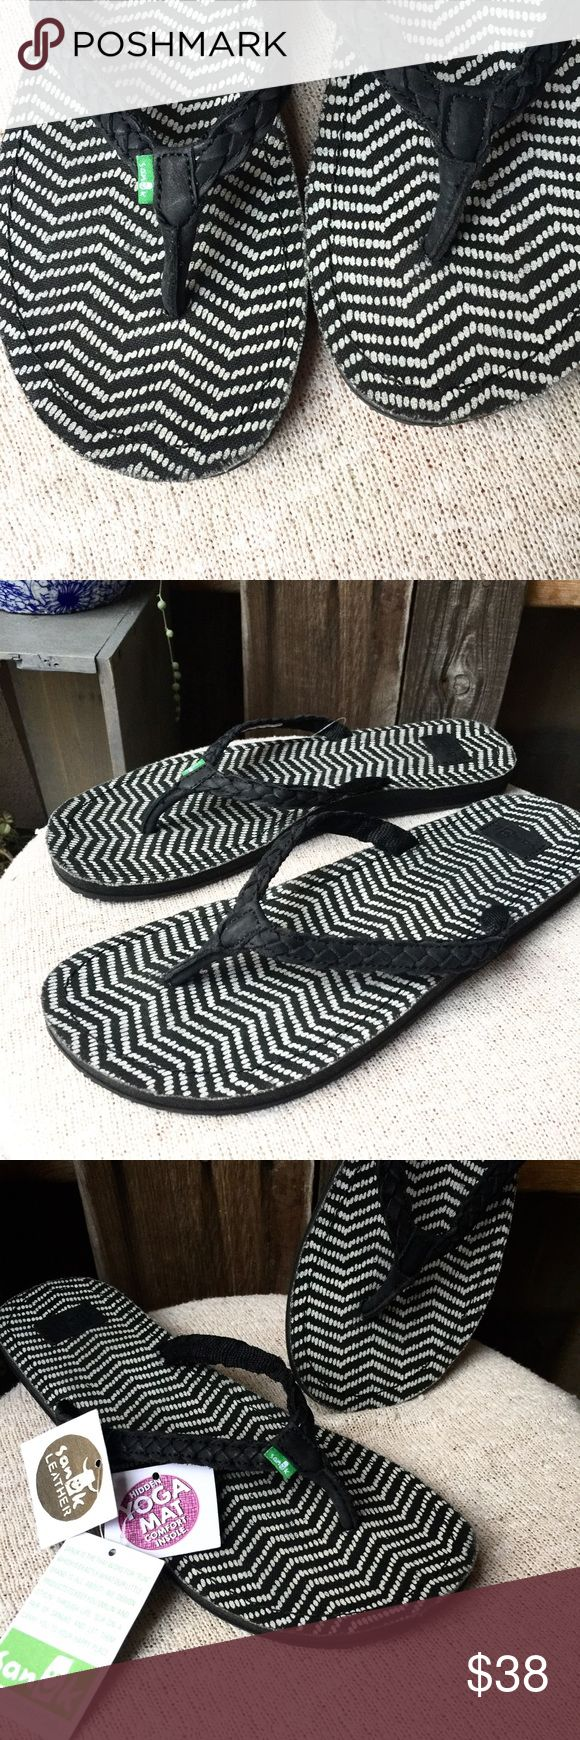 🌴 SANUK 🌴  Braided leather flip flop sandals NWT • SANUK • Flip Flop Sandals • Braided Black Leather Straps •  Black and Cream Zig Zag Pattern on Sole • Yoga Mat Cushioned Soles • US Women's Size 8 • Sanuk Shoes Sandals